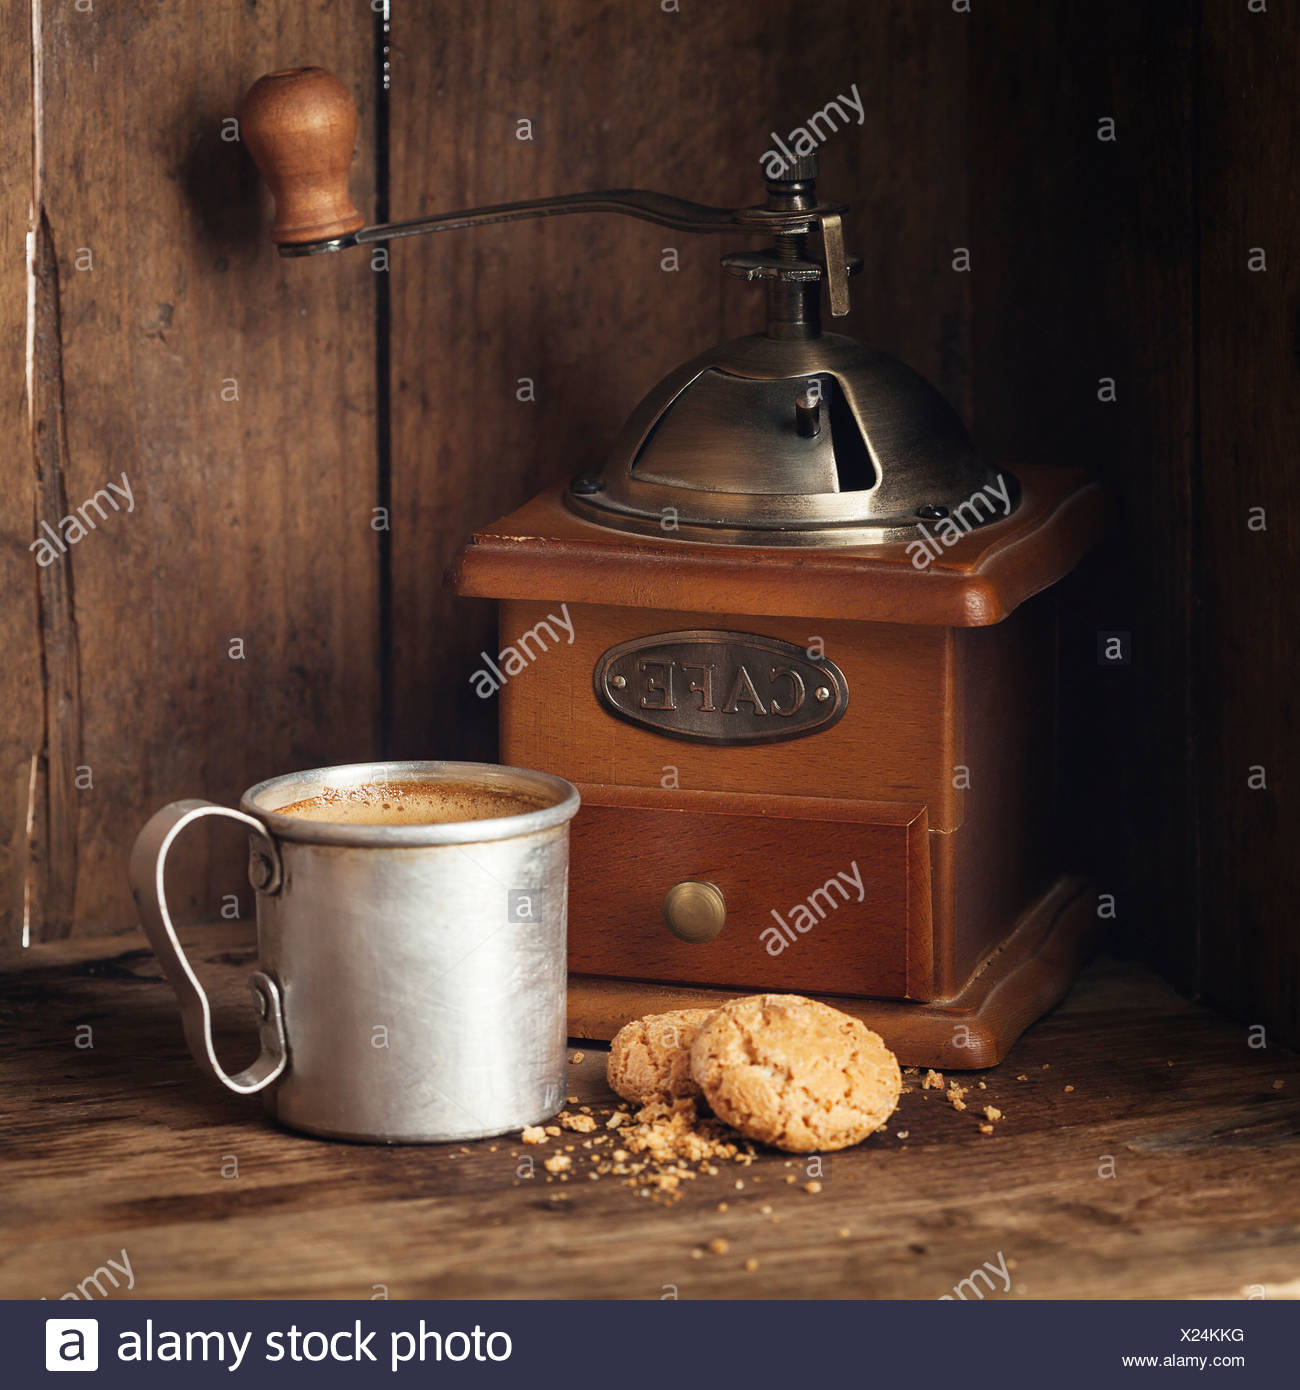 Coffee in aluminum mug with amaretti biscuits - Stock Image